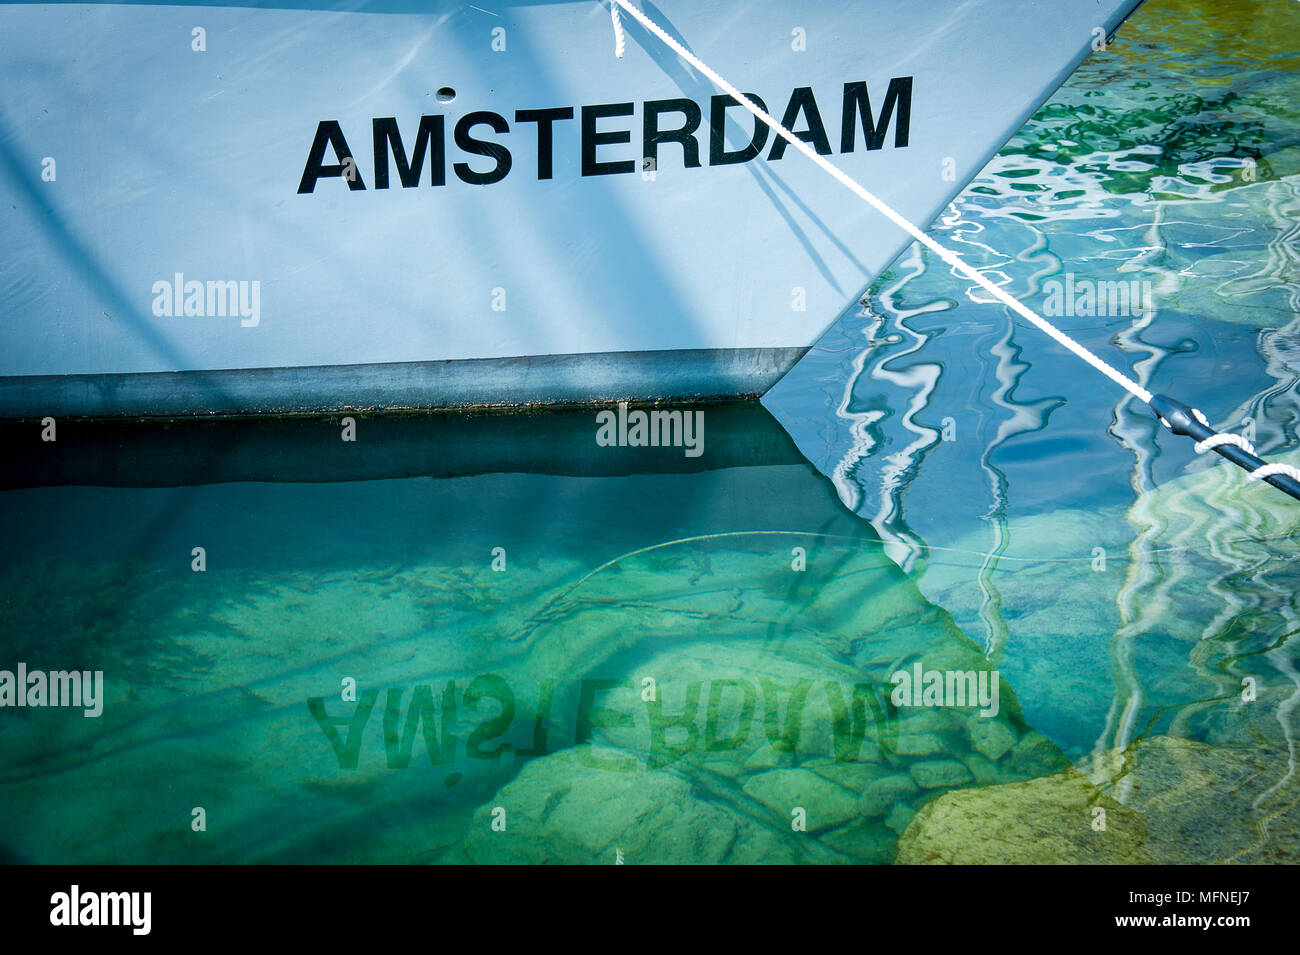 A white boat moored in a turquoise lake. Nice geometric lines and rippled reflections of the name Amsterdam - Stock Image